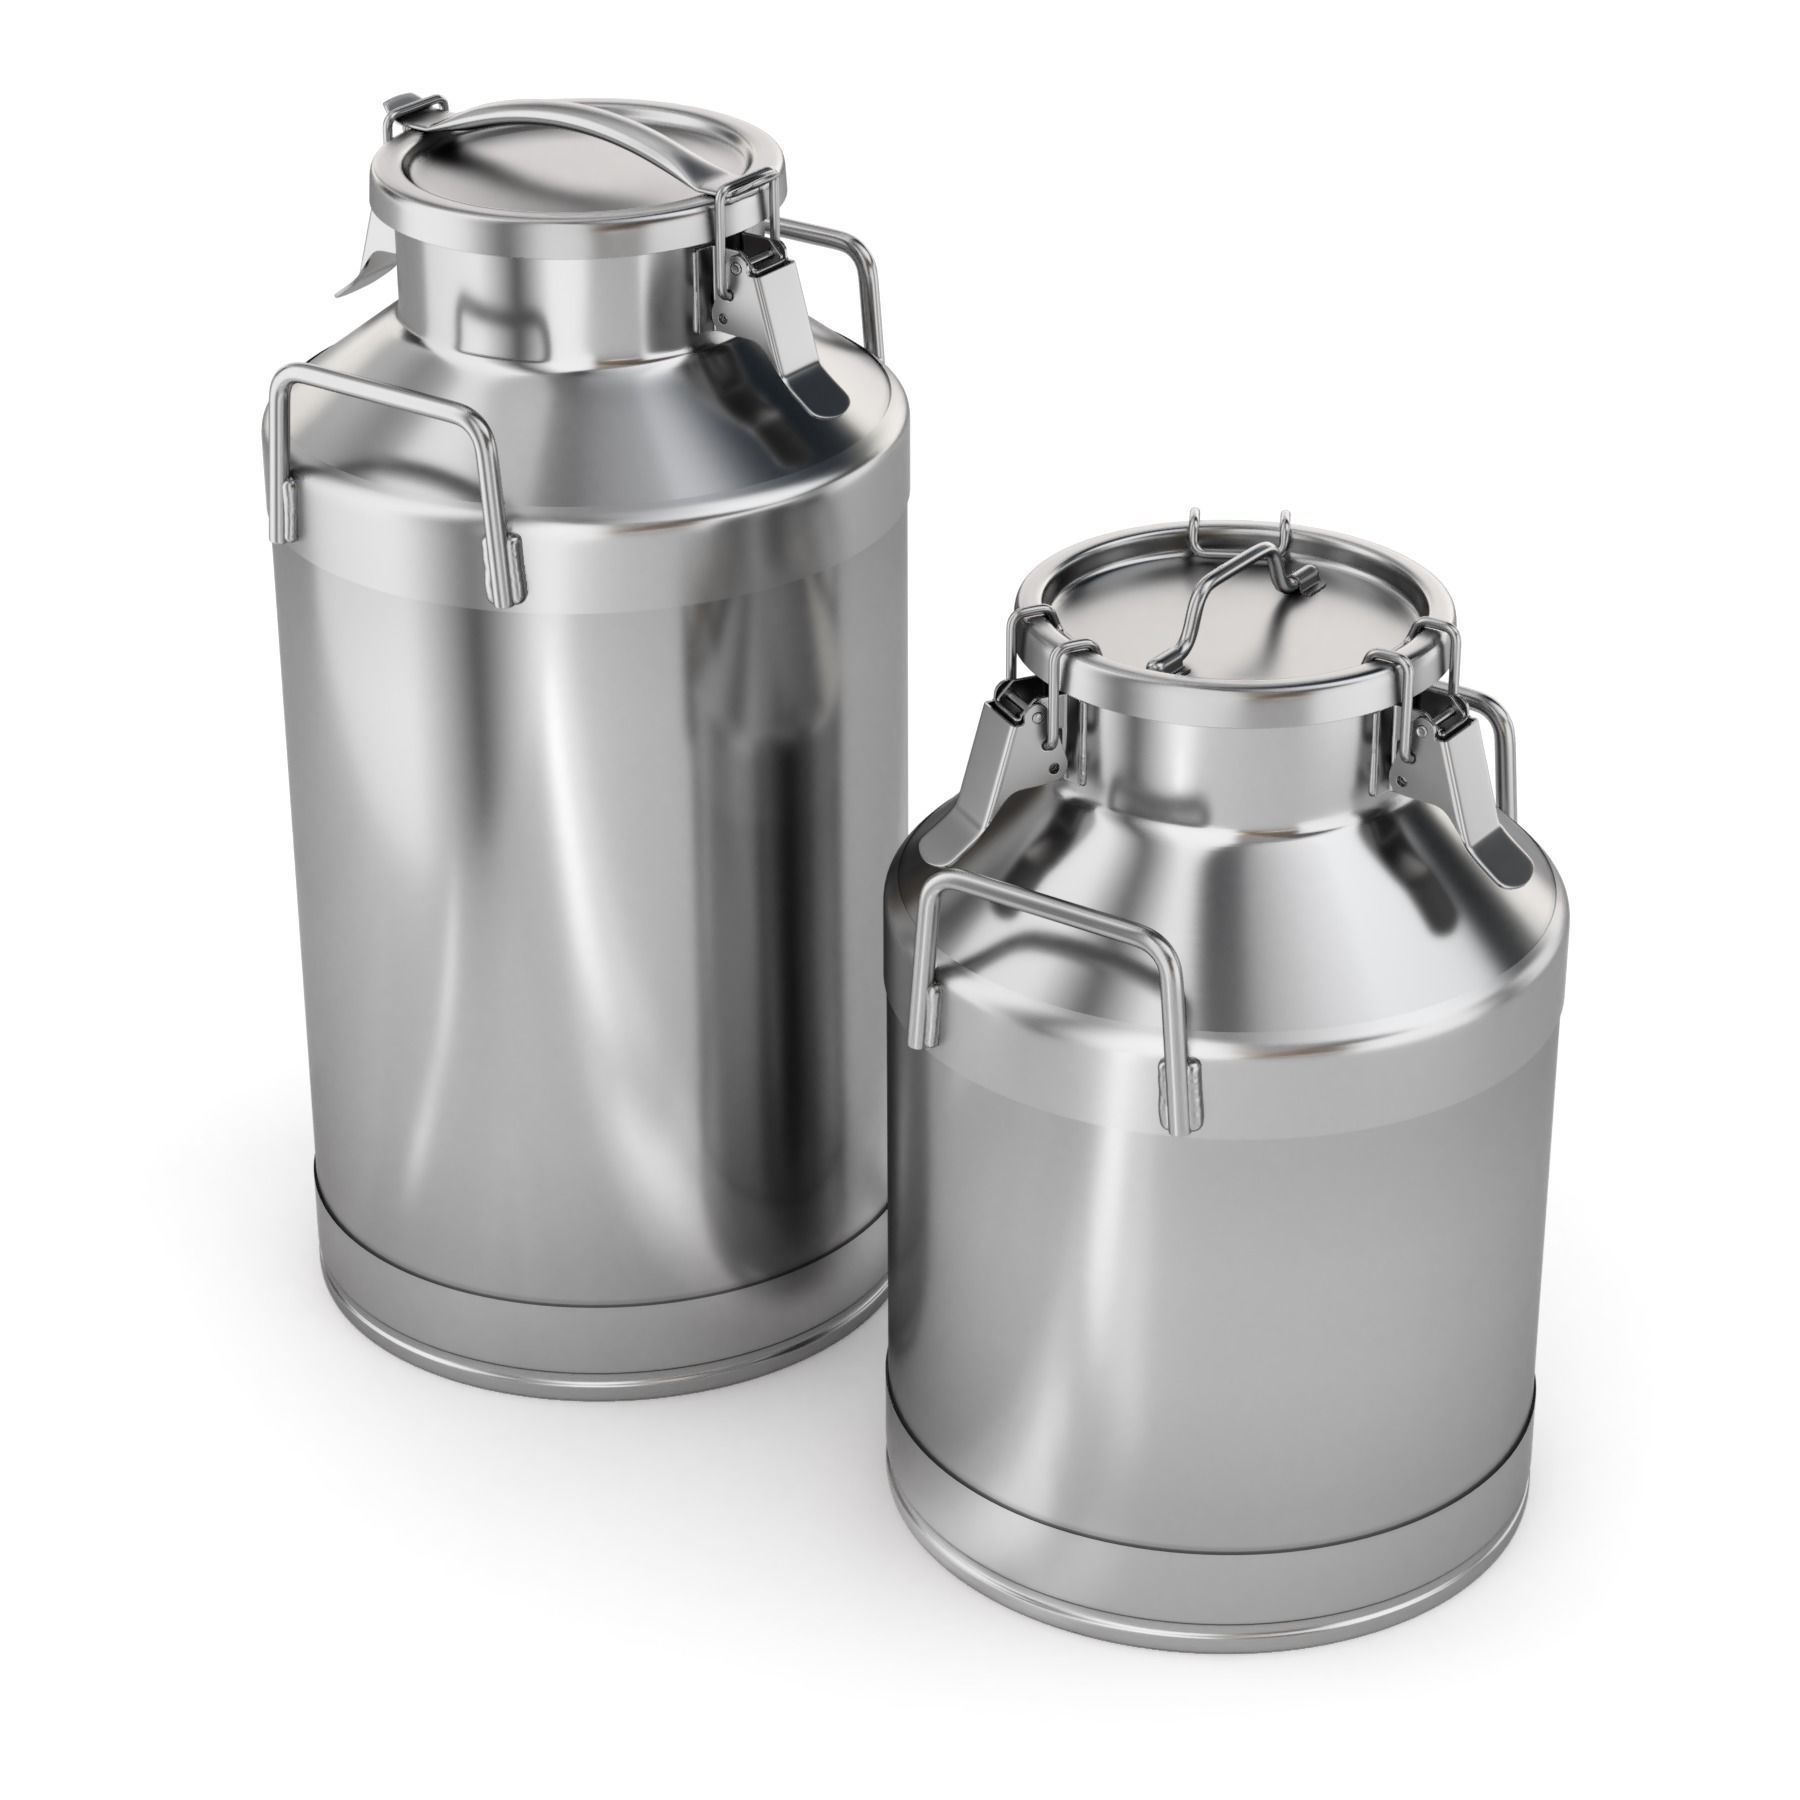 Big Milk Cans with Latch